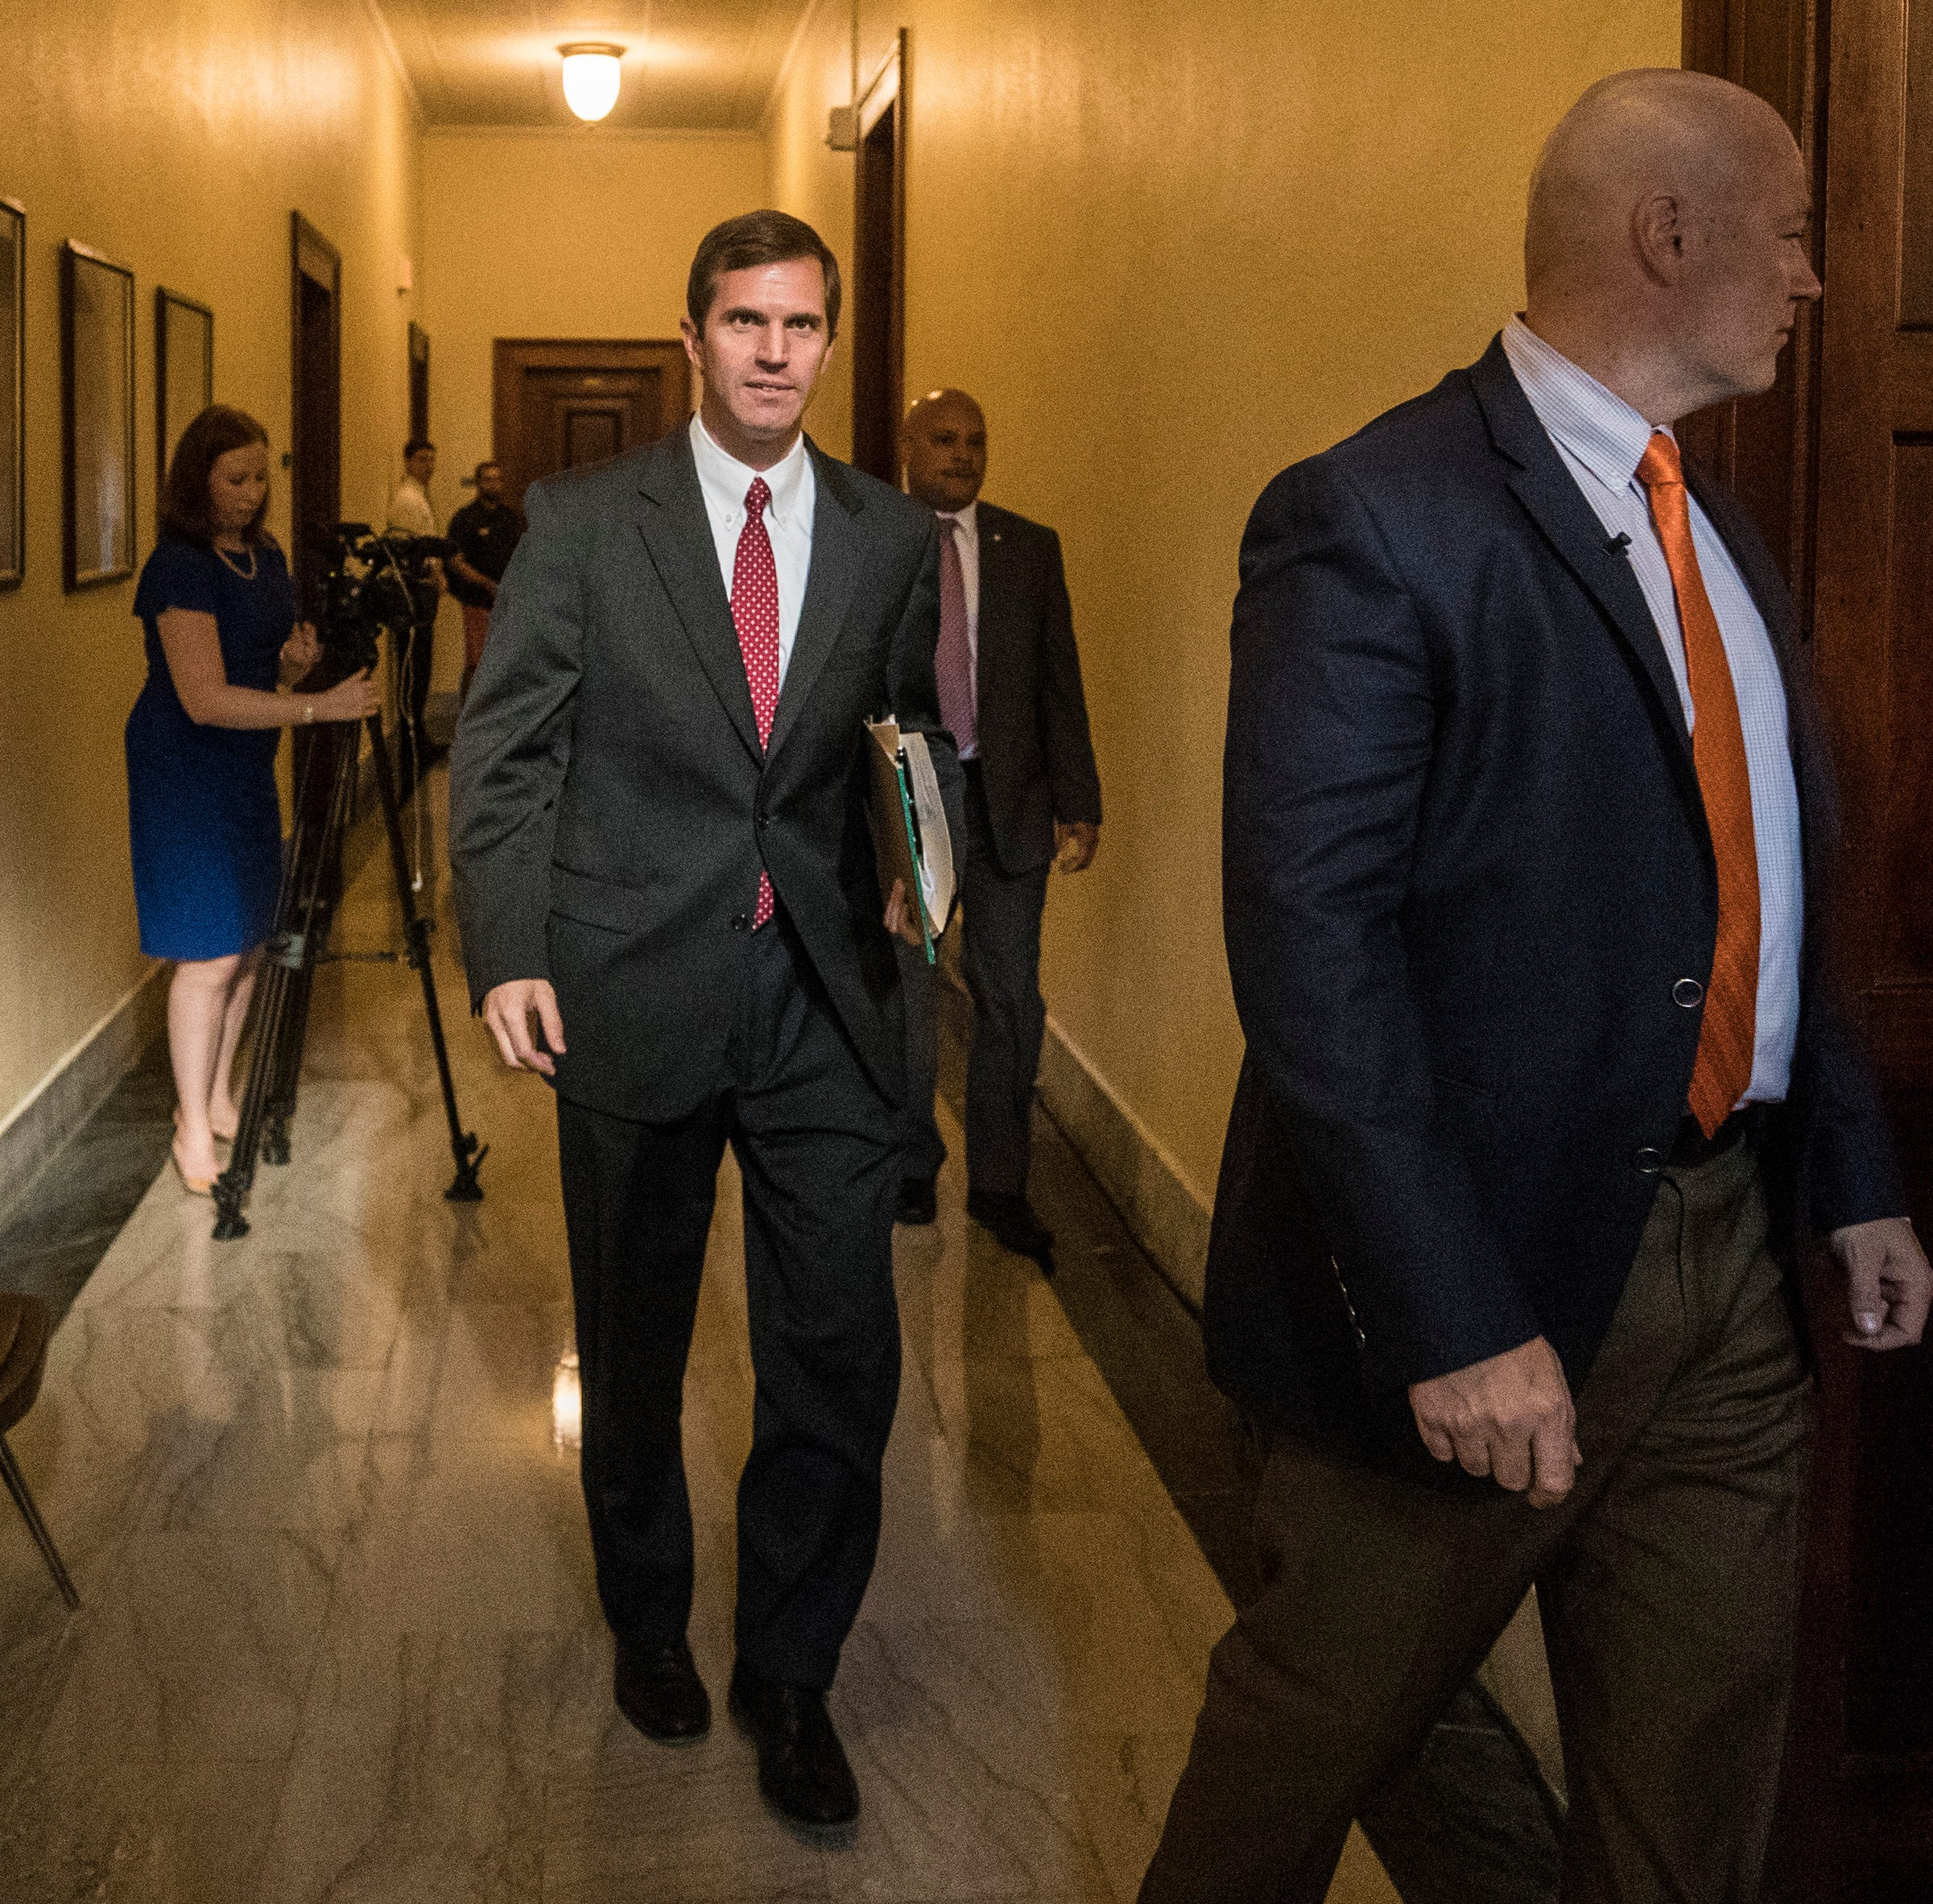 Attorney General Andy Beshear, heading to the Kentucky Supreme Court, says Republicans illegally zipped the bill through the legislative process and that it violates contract rights of thousands of public employees. Sept. 20, 2018